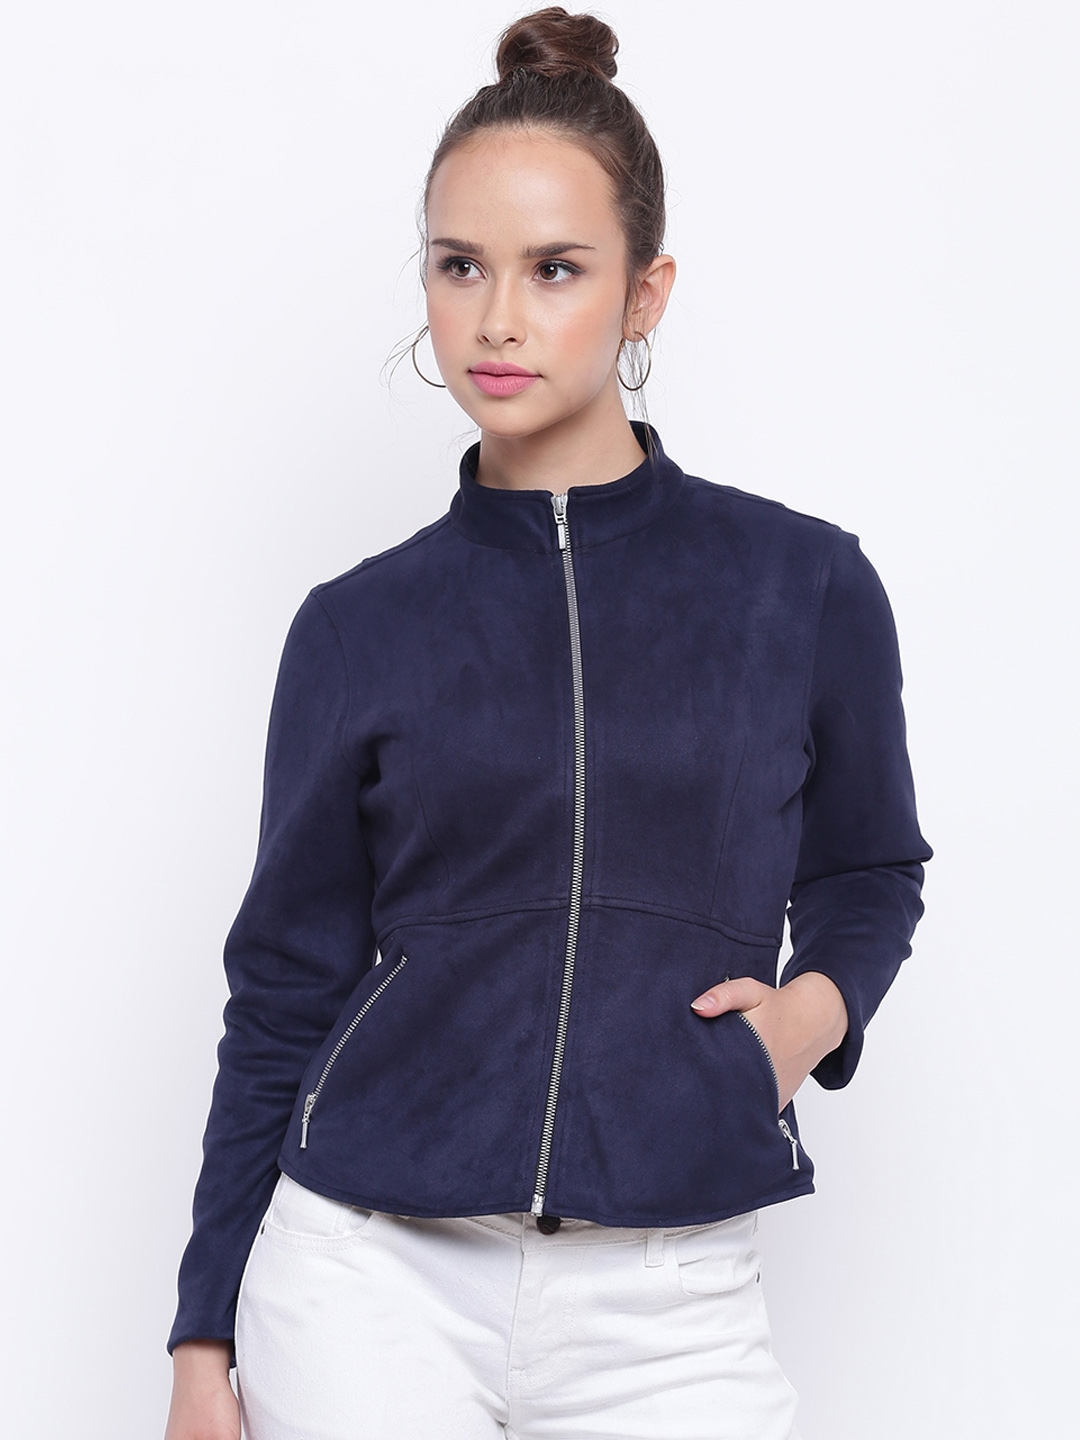 a3187b46d Buy Texco Women Navy Blue Open Front Insulator Jacket - Jackets for ...